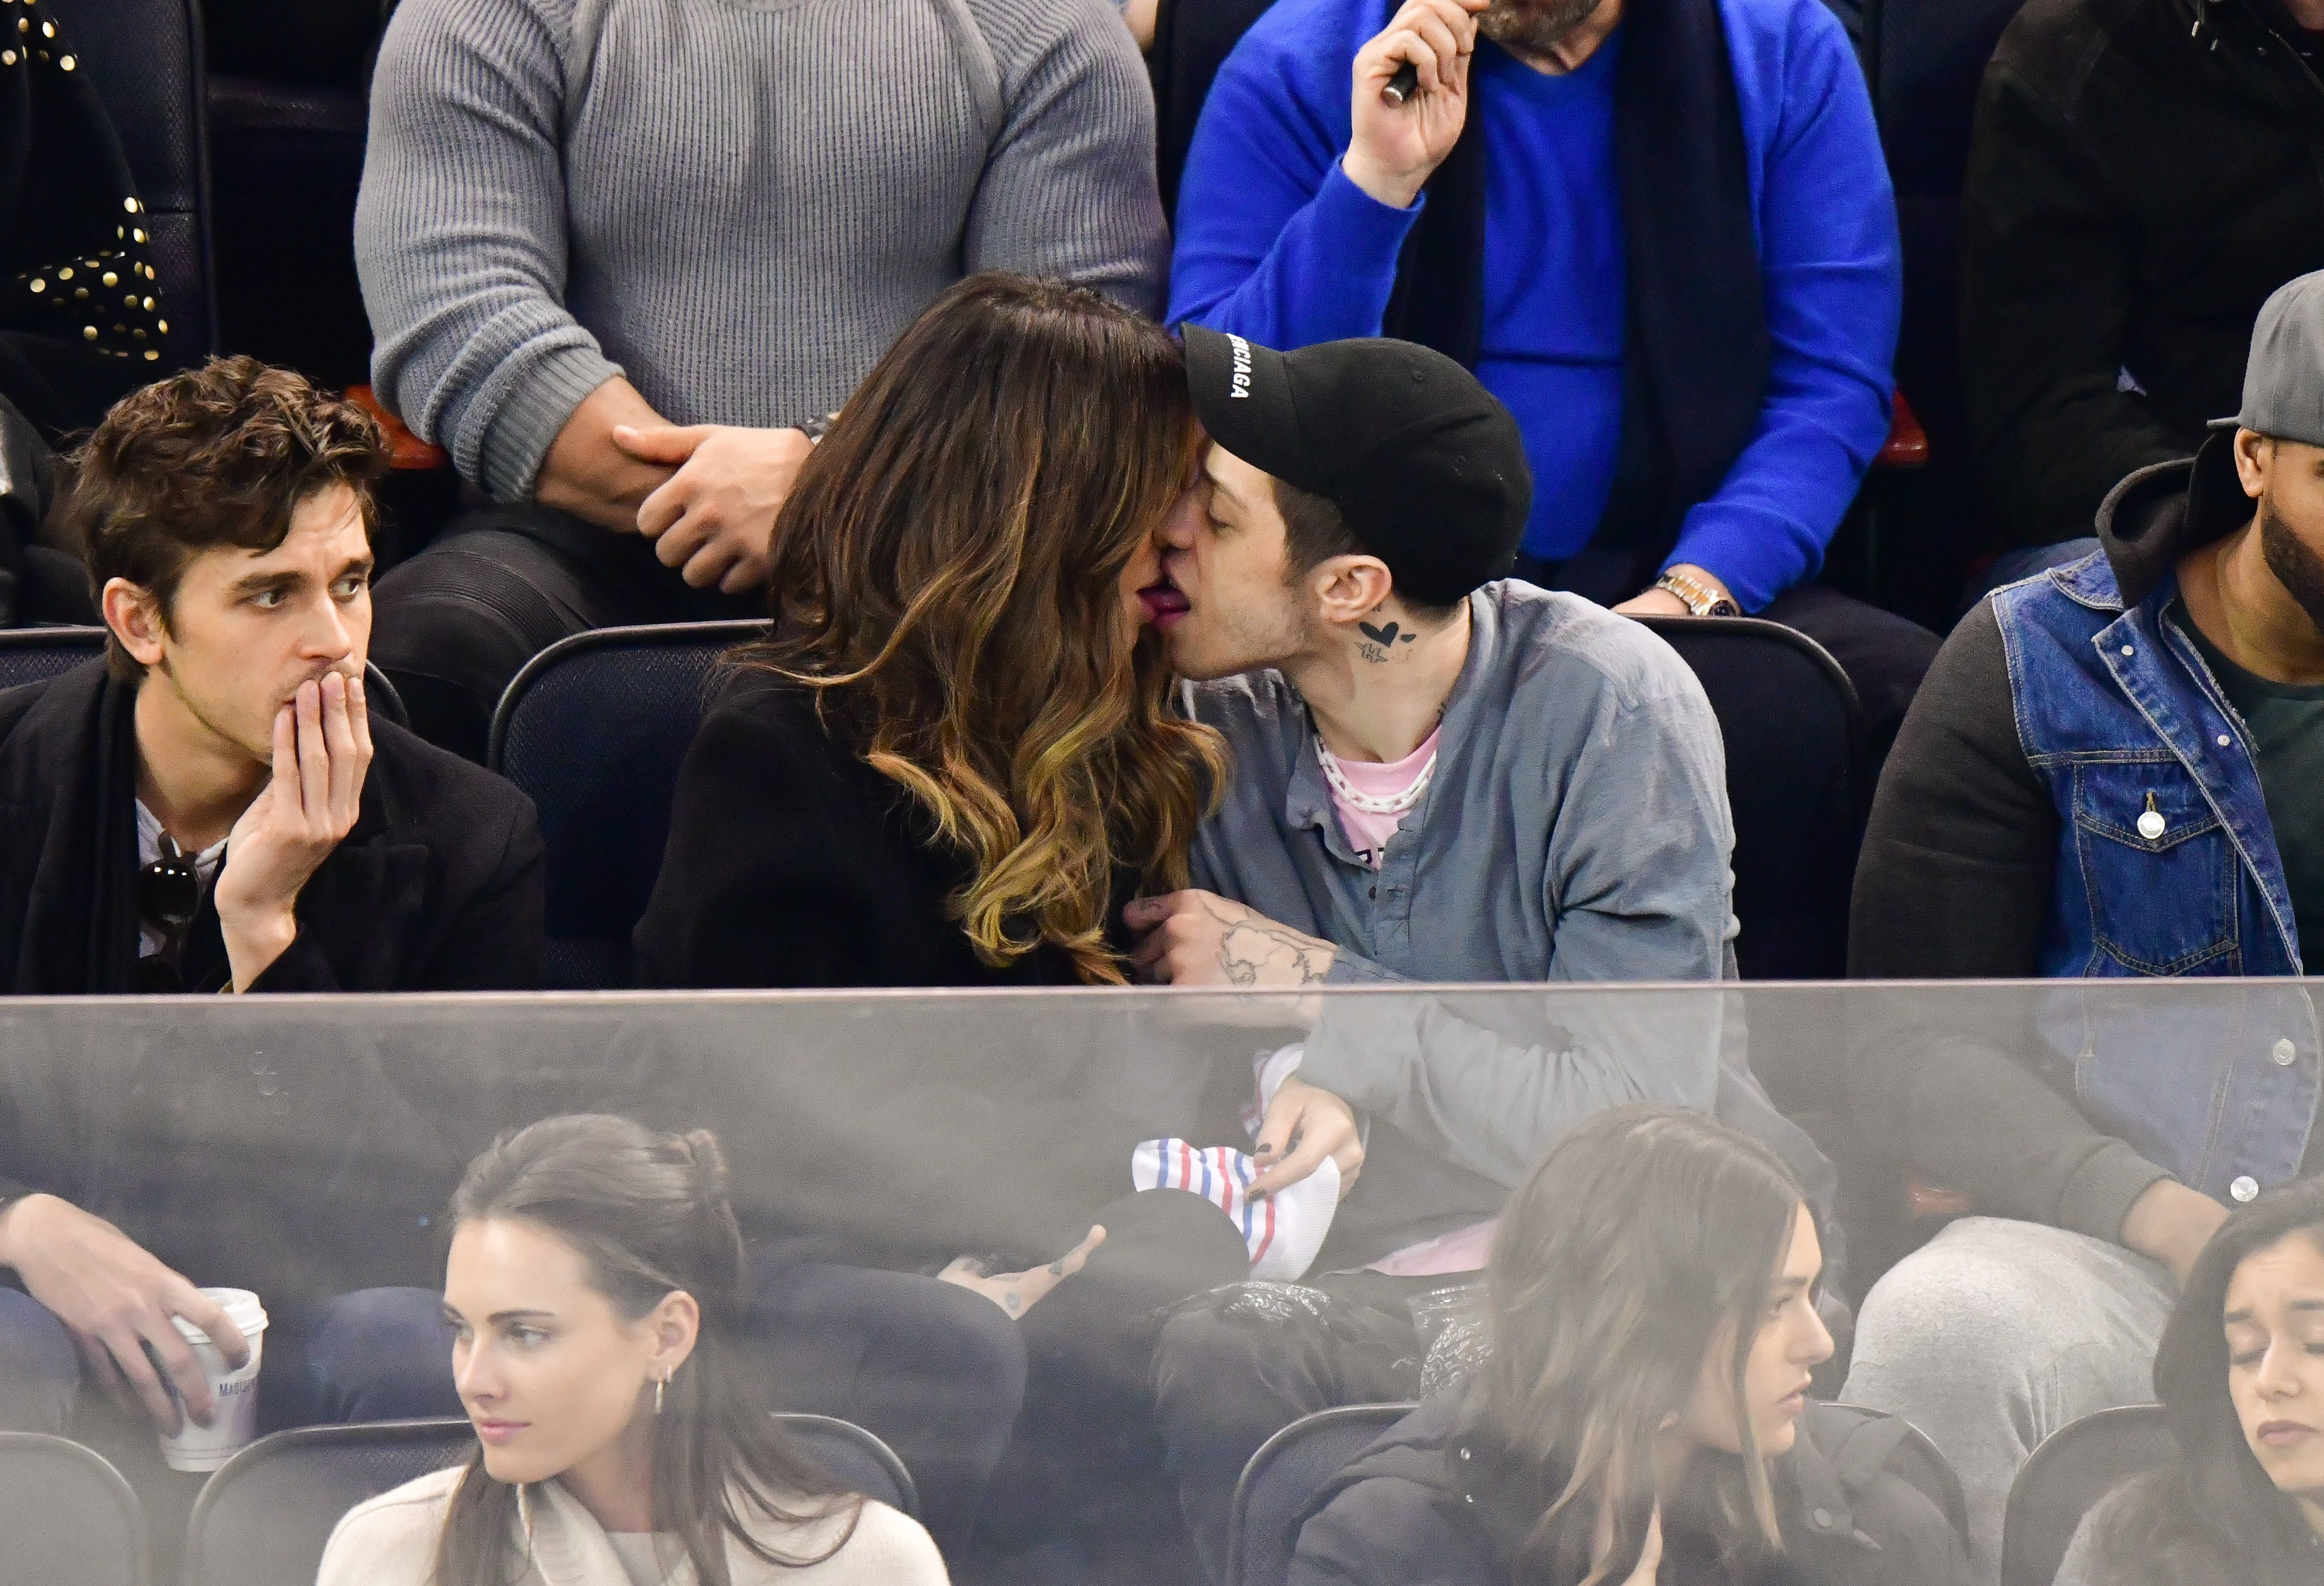 Pete Davidson and Kate Beckinsale confirm their romance